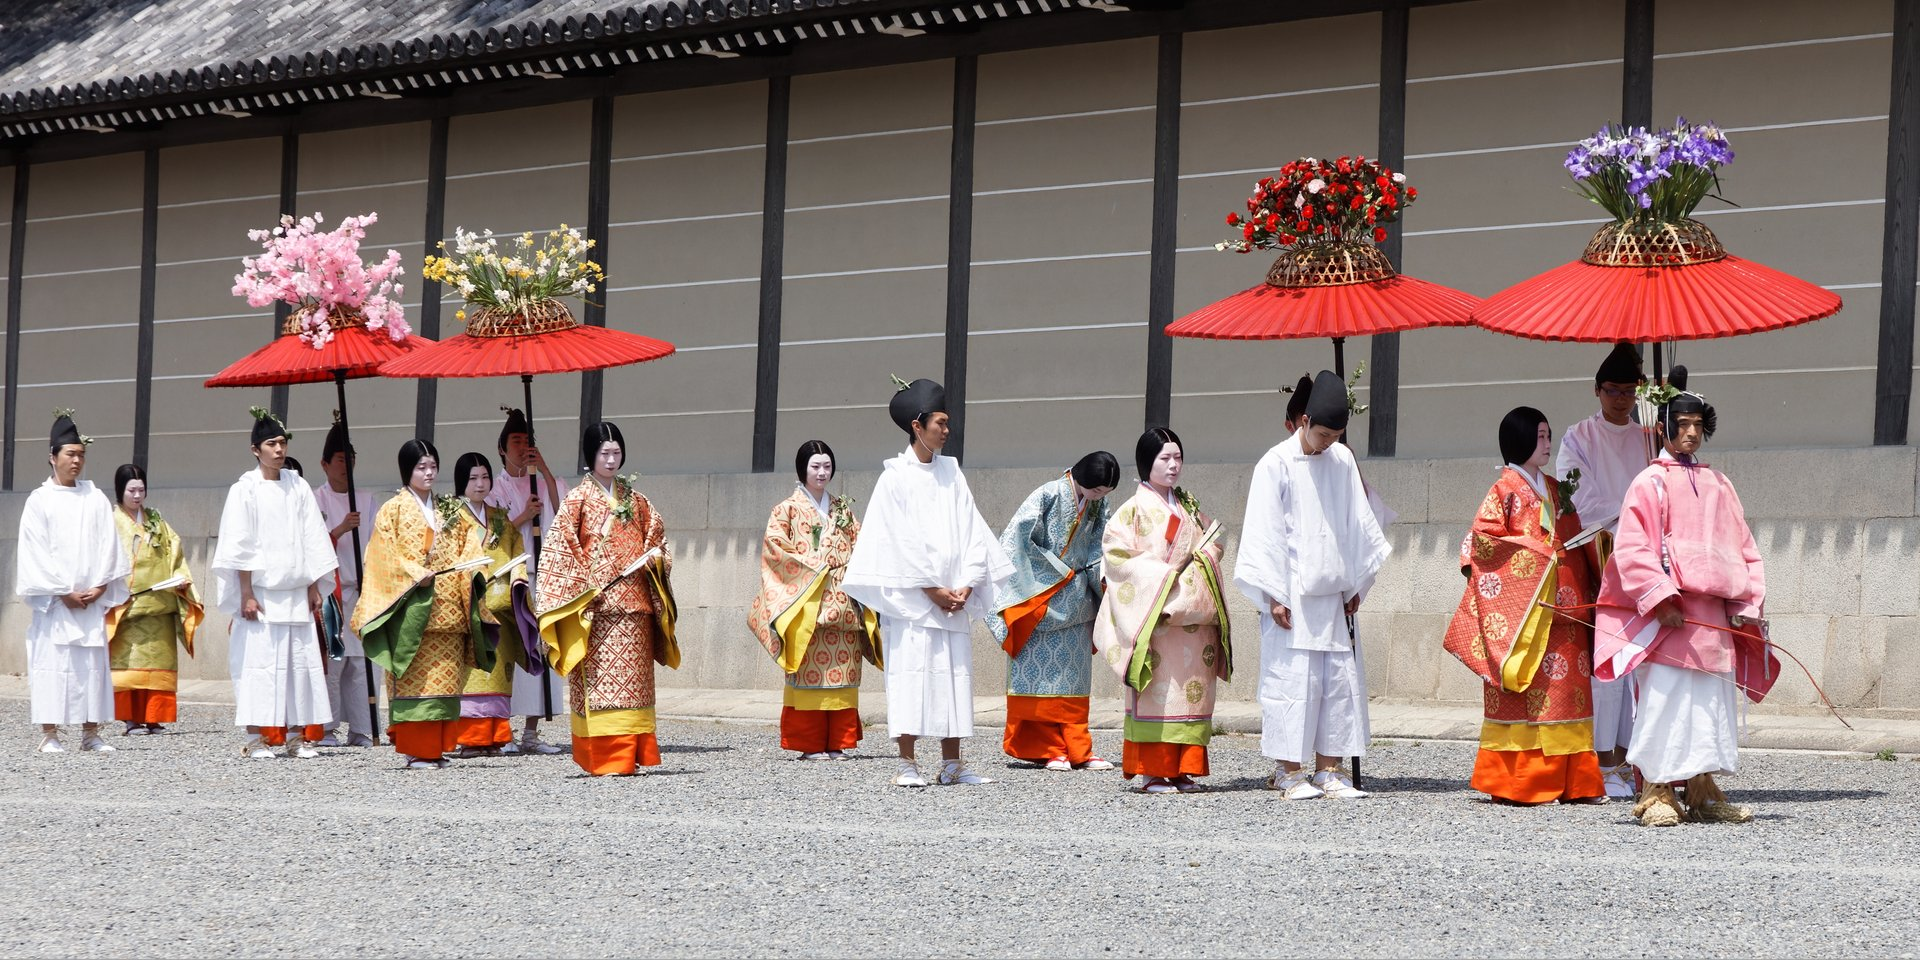 Best time to see Aoi Matsuri (Festival) in Kyoto